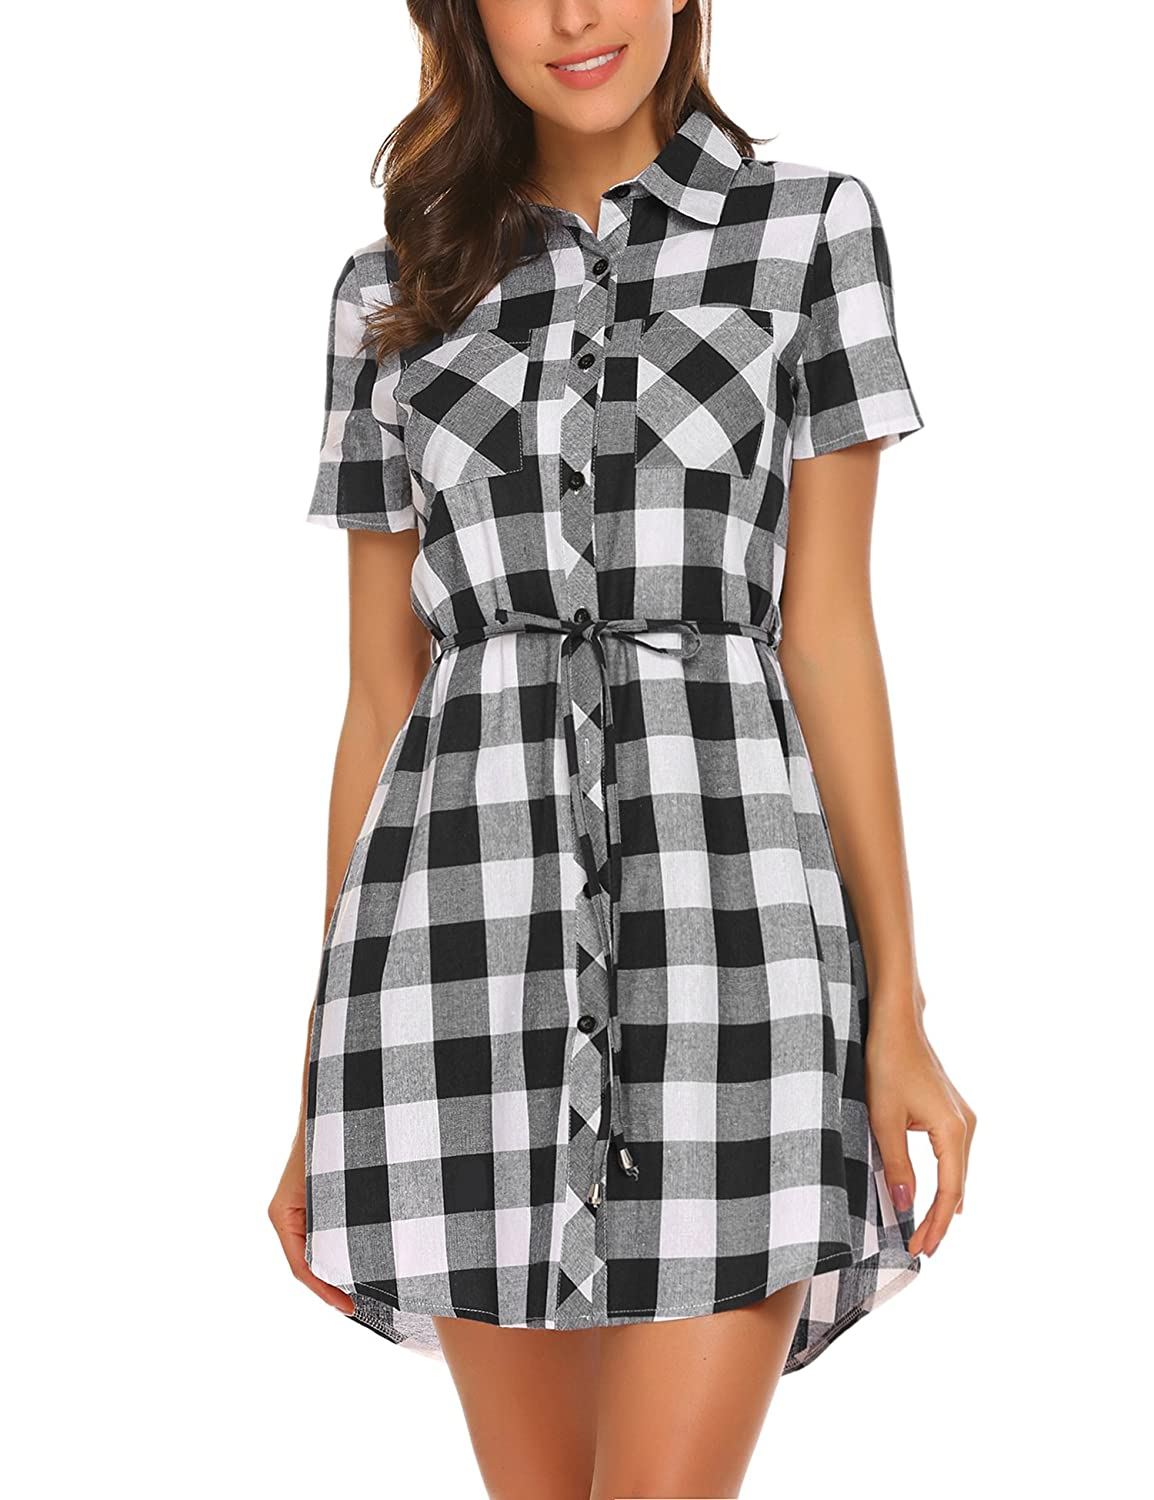 Hotouch Women's Roll Up Sleeve Slim Plaid Shirts Button Down Belted Shirt Dresses AMH006445